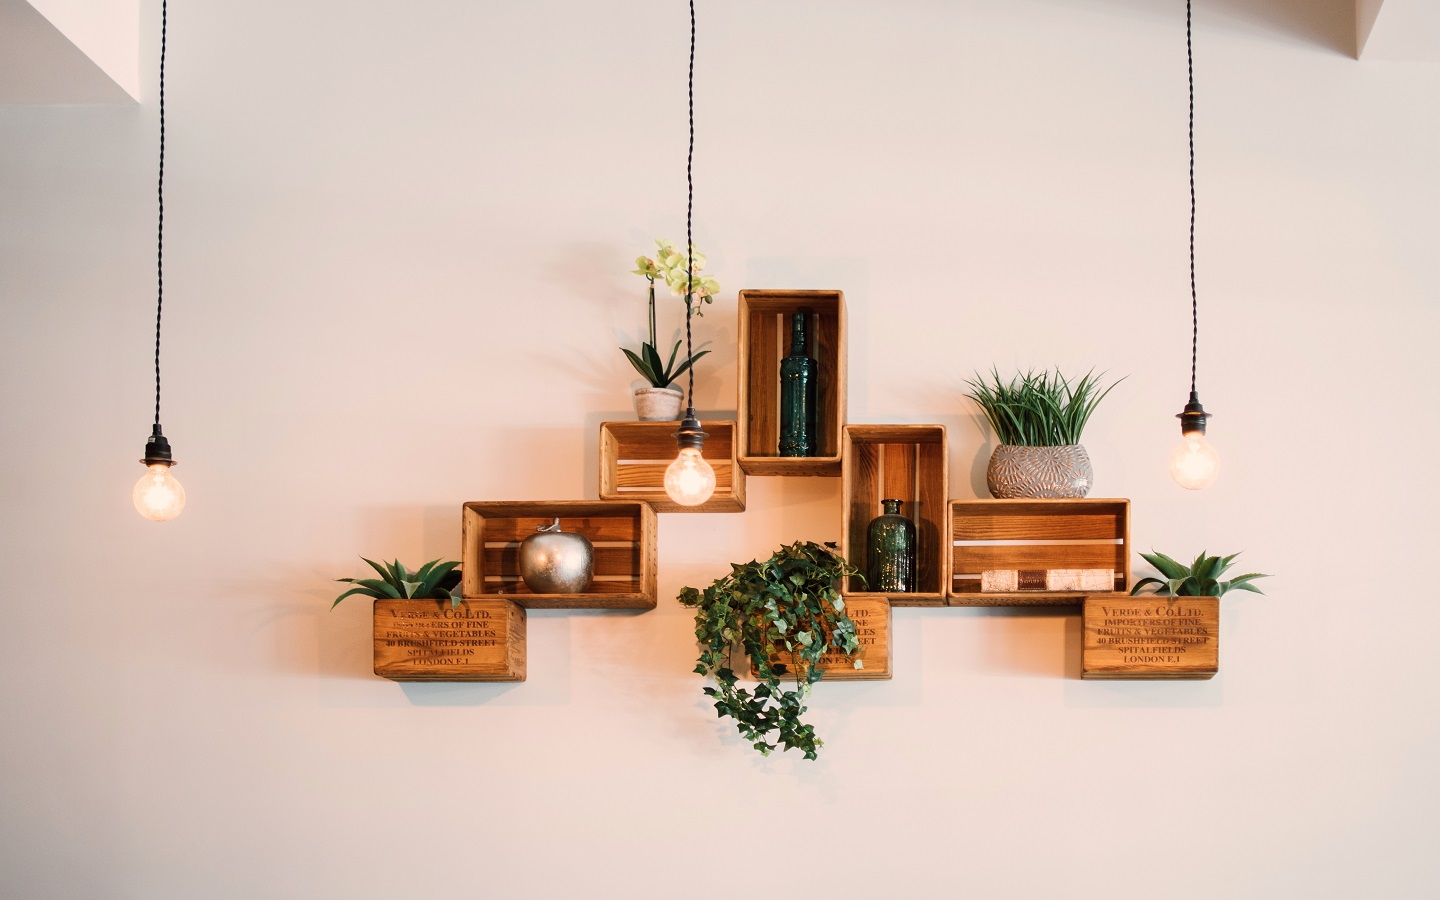 Wall Shelves to the Rescue